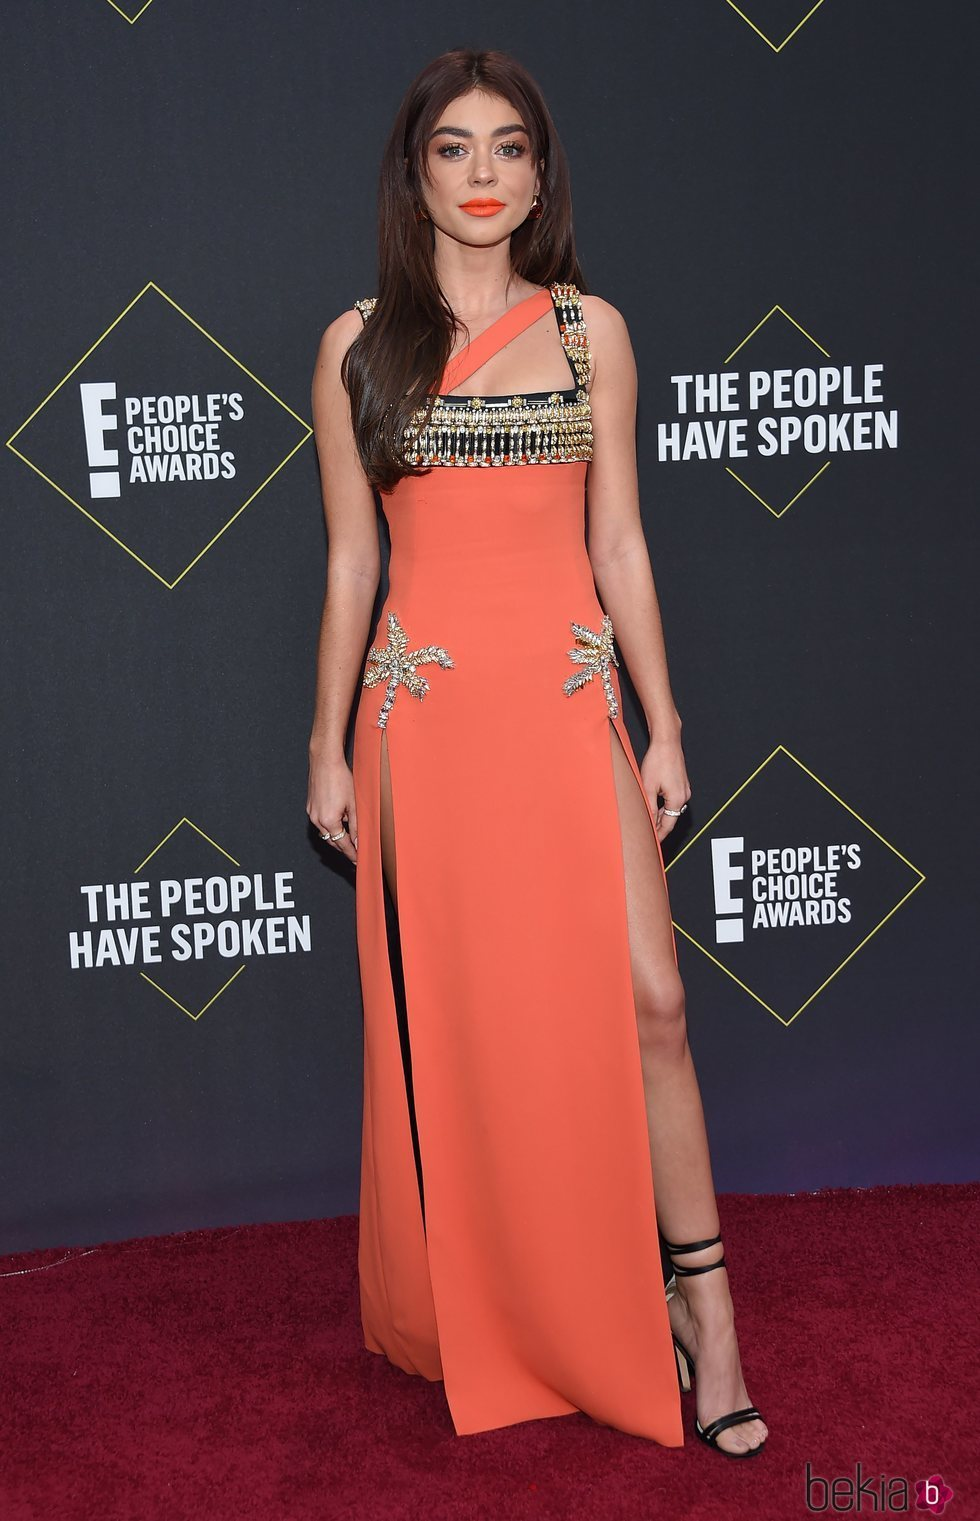 Sarah Hyland en la alfombra roja de los People's Choice Awards 2019